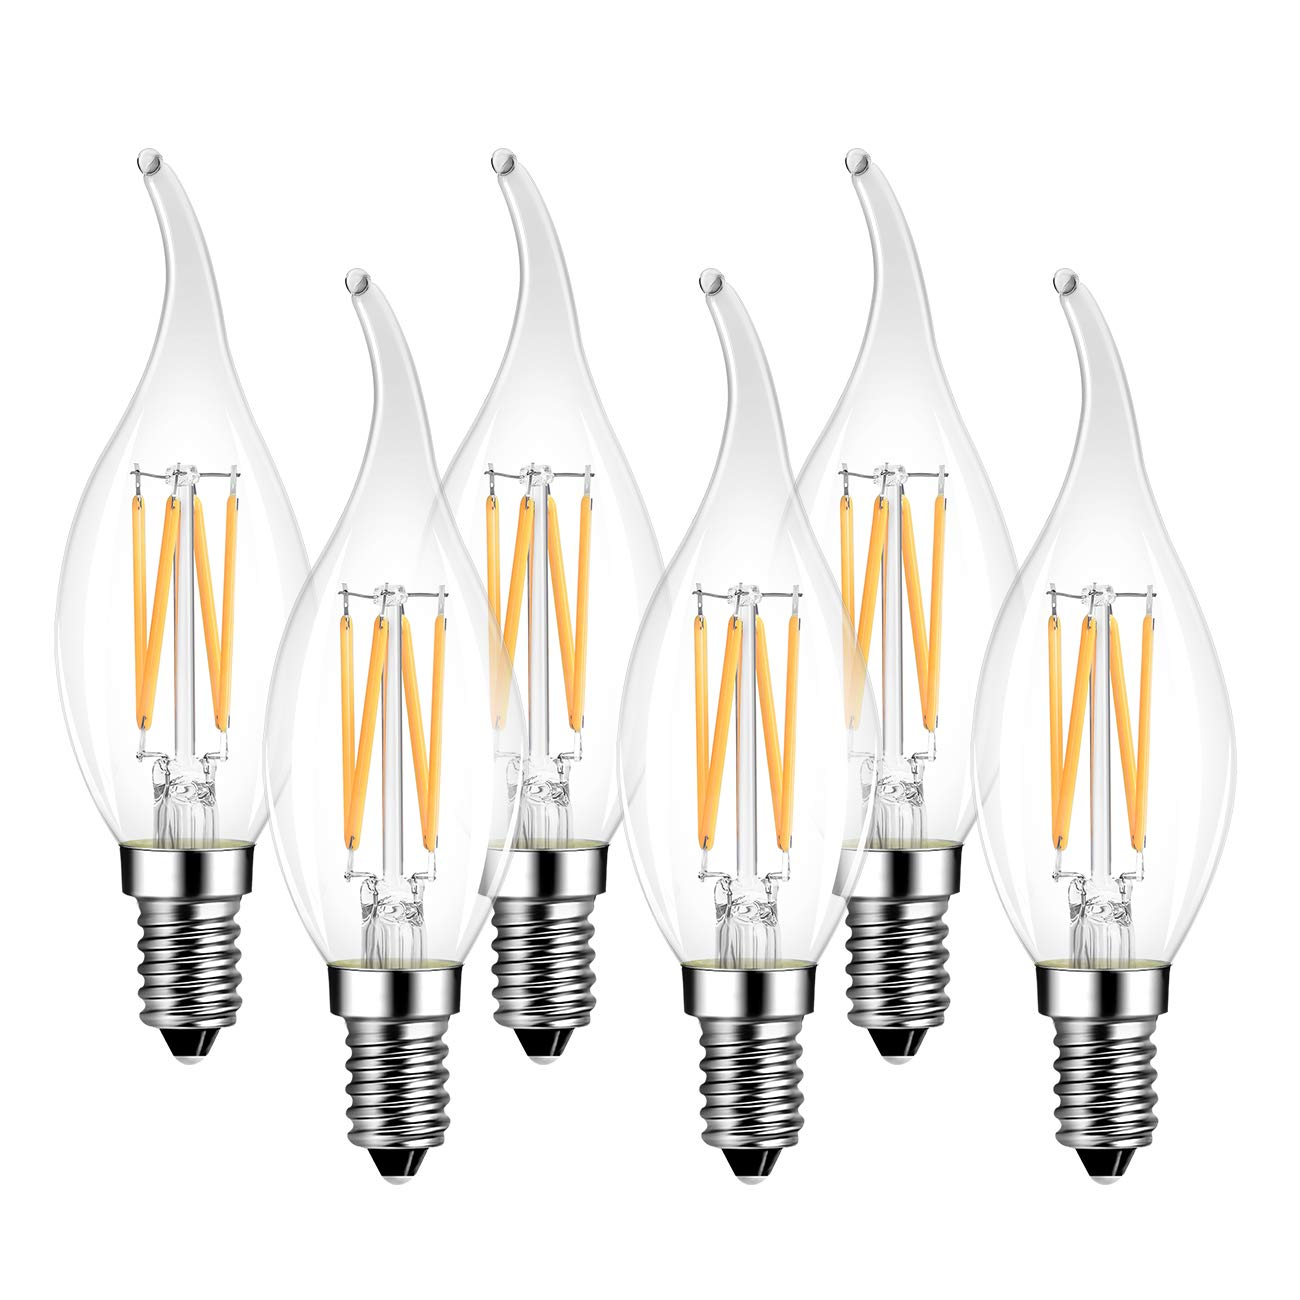 E14 LED Filament Light Bulb Chandelier, 4W 2700K Warm White 470Lm, 40 Watt Equivalent, Non Dimmable, LVWIT C35 Small Screw Vintage Glass Candle Bulb 6 Packs